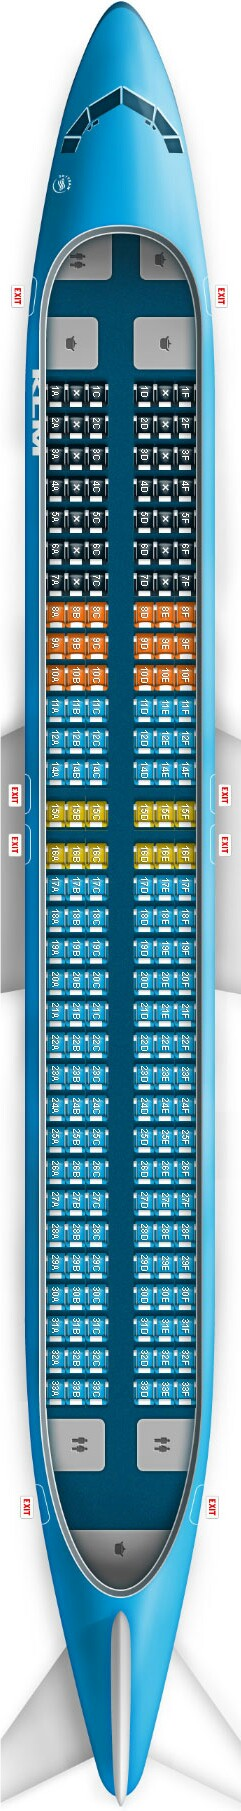 KLM 737-900 Seat Map (With images) | Klm airlines, Airline ...